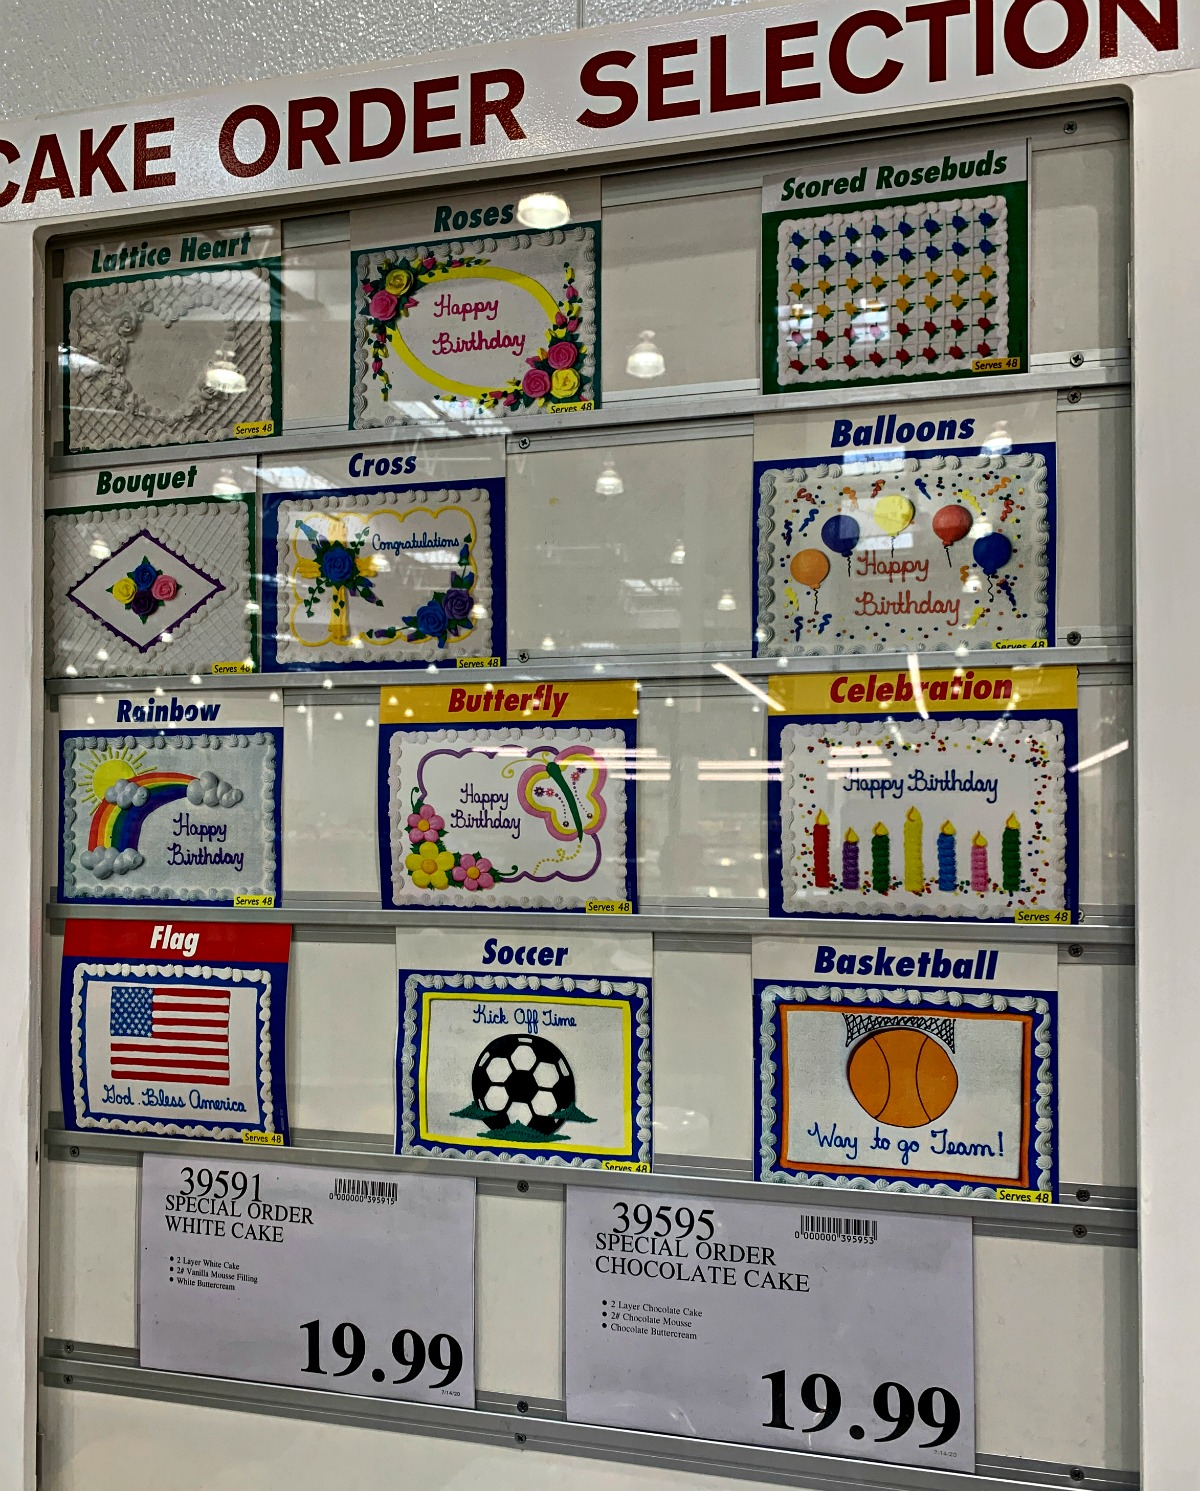 Costco cake ordering kiosk with close up of cake designs - taken July 2020